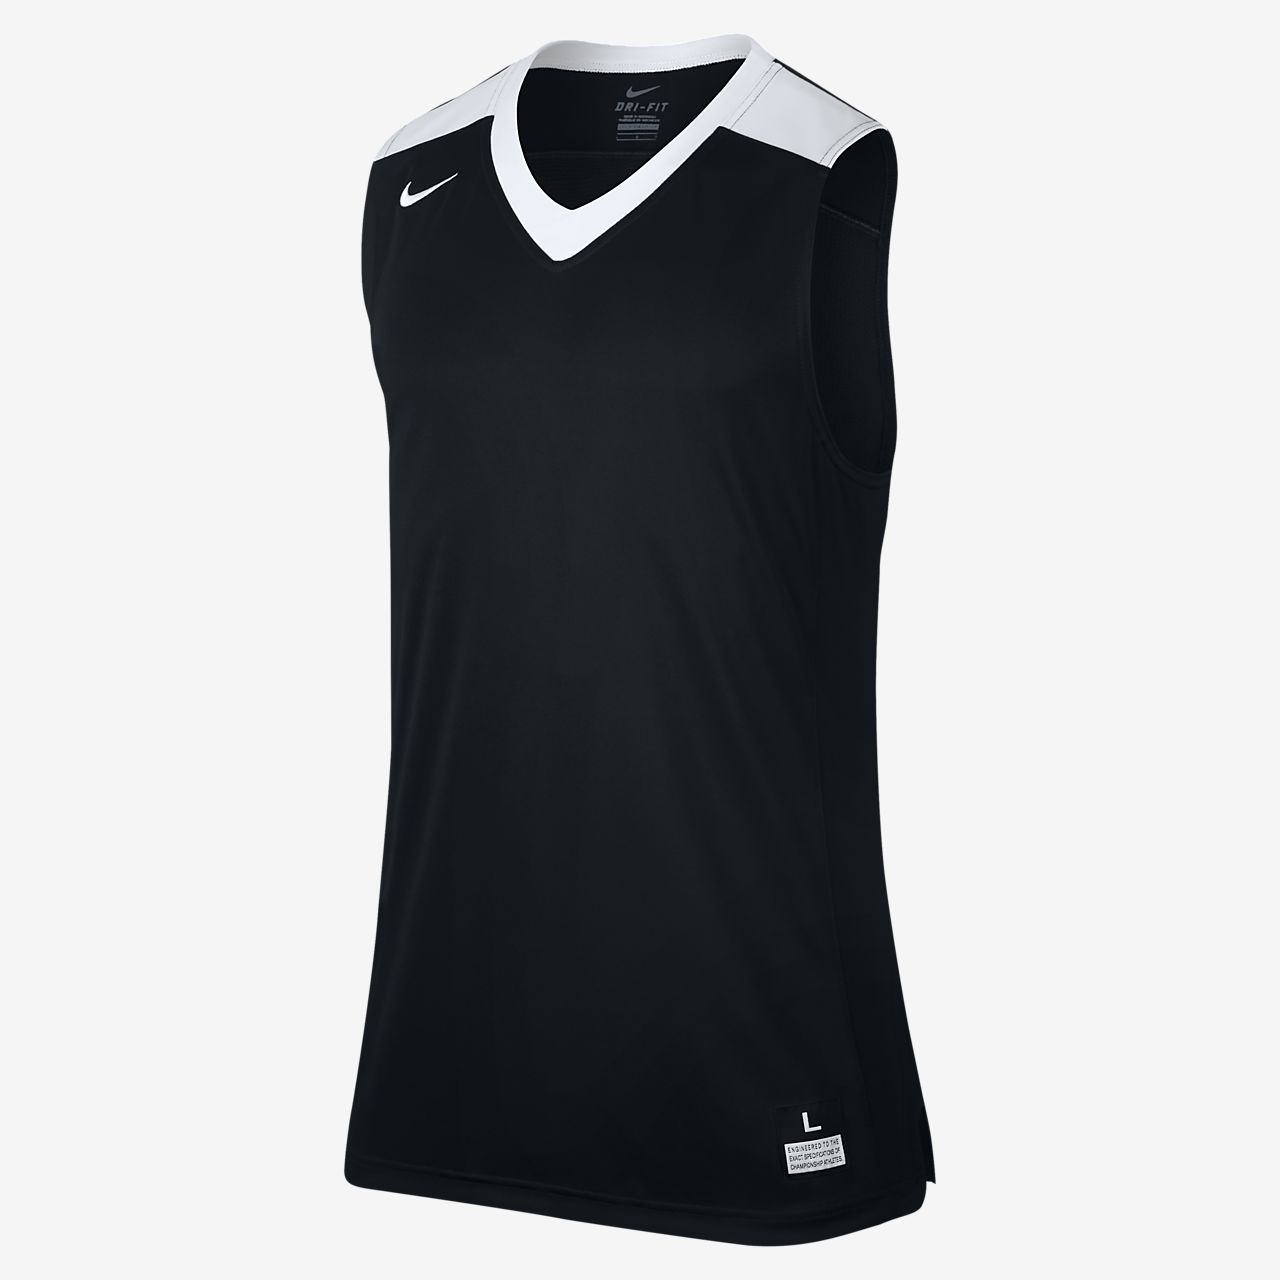 Nike Elite Men's Sleeveless Basketball Jerseys Team Black/Team White